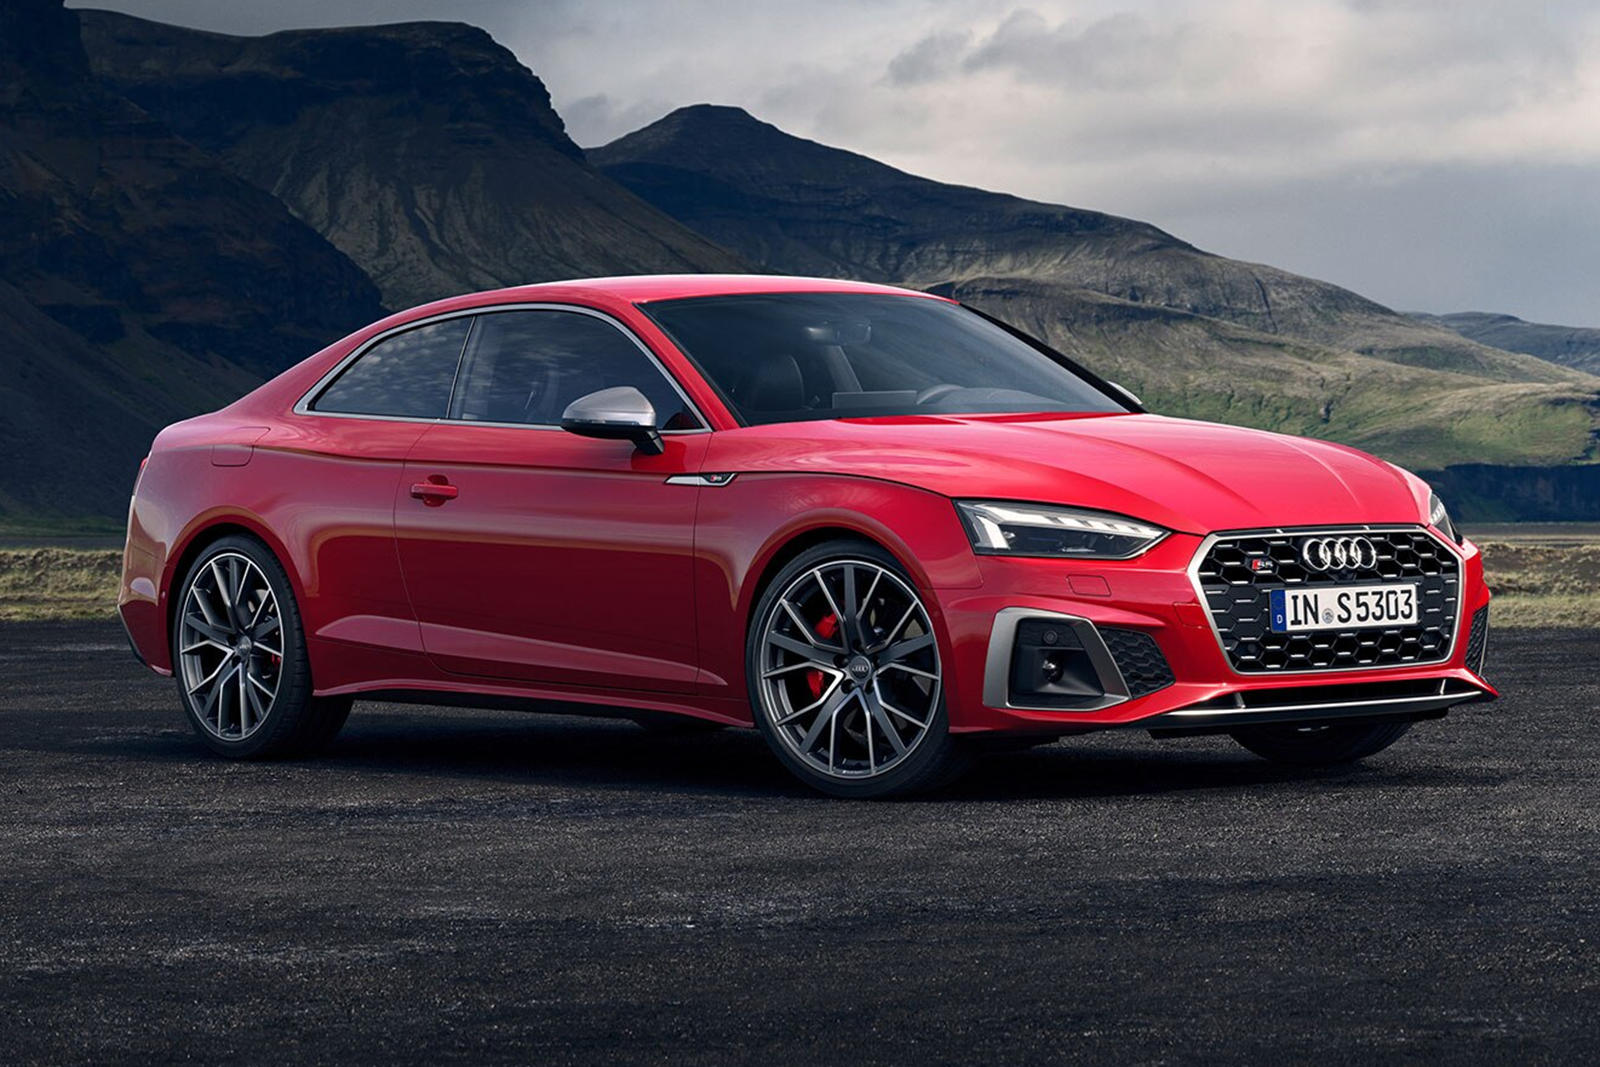 2020 Audi S5 Coupe Review Trims Specs Price New Interior Features Exterior Design And Specifications Carbuzz